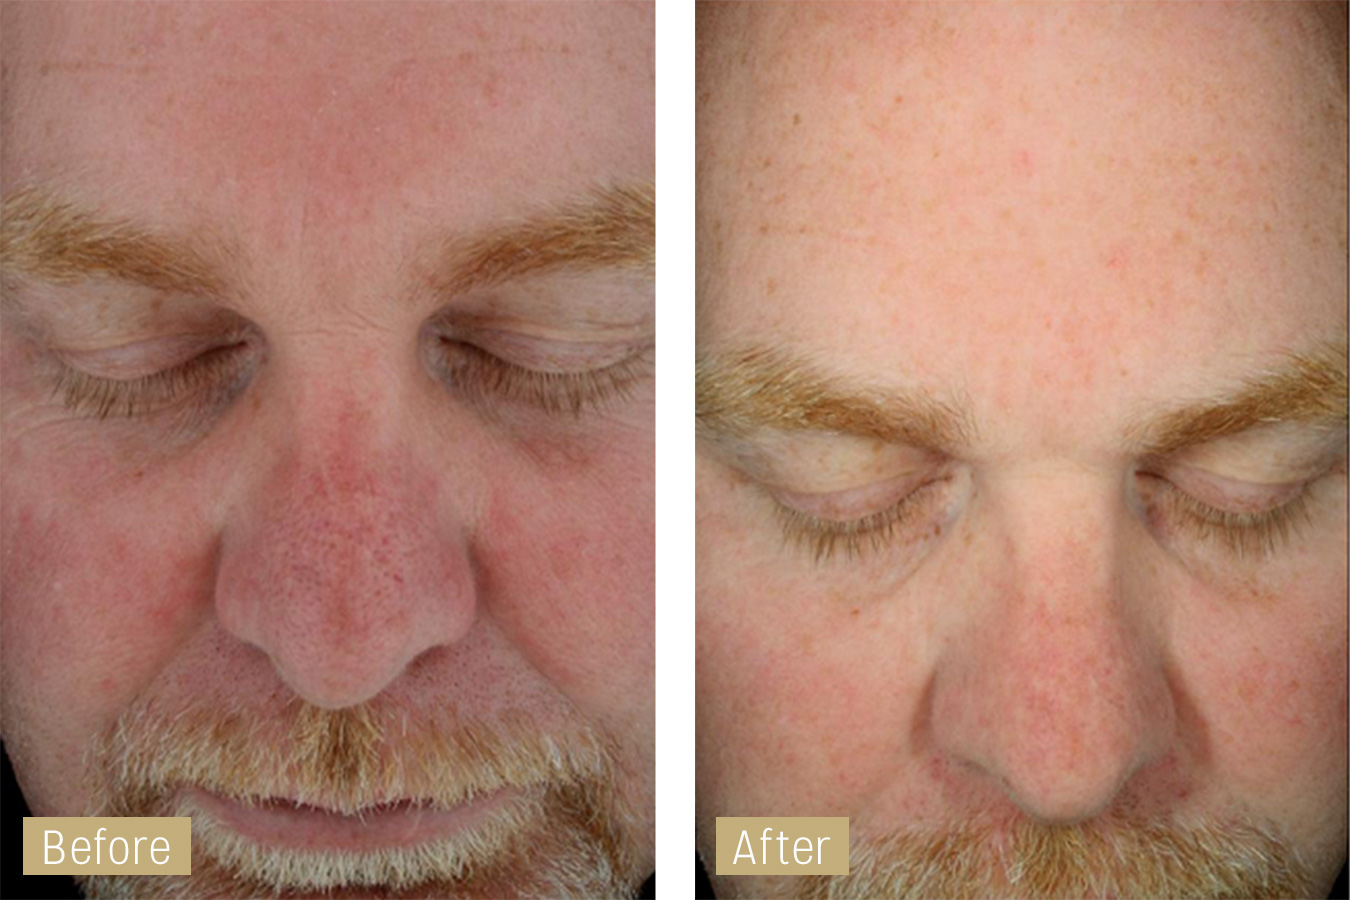 sun damage treatment - hydrafacial before and after